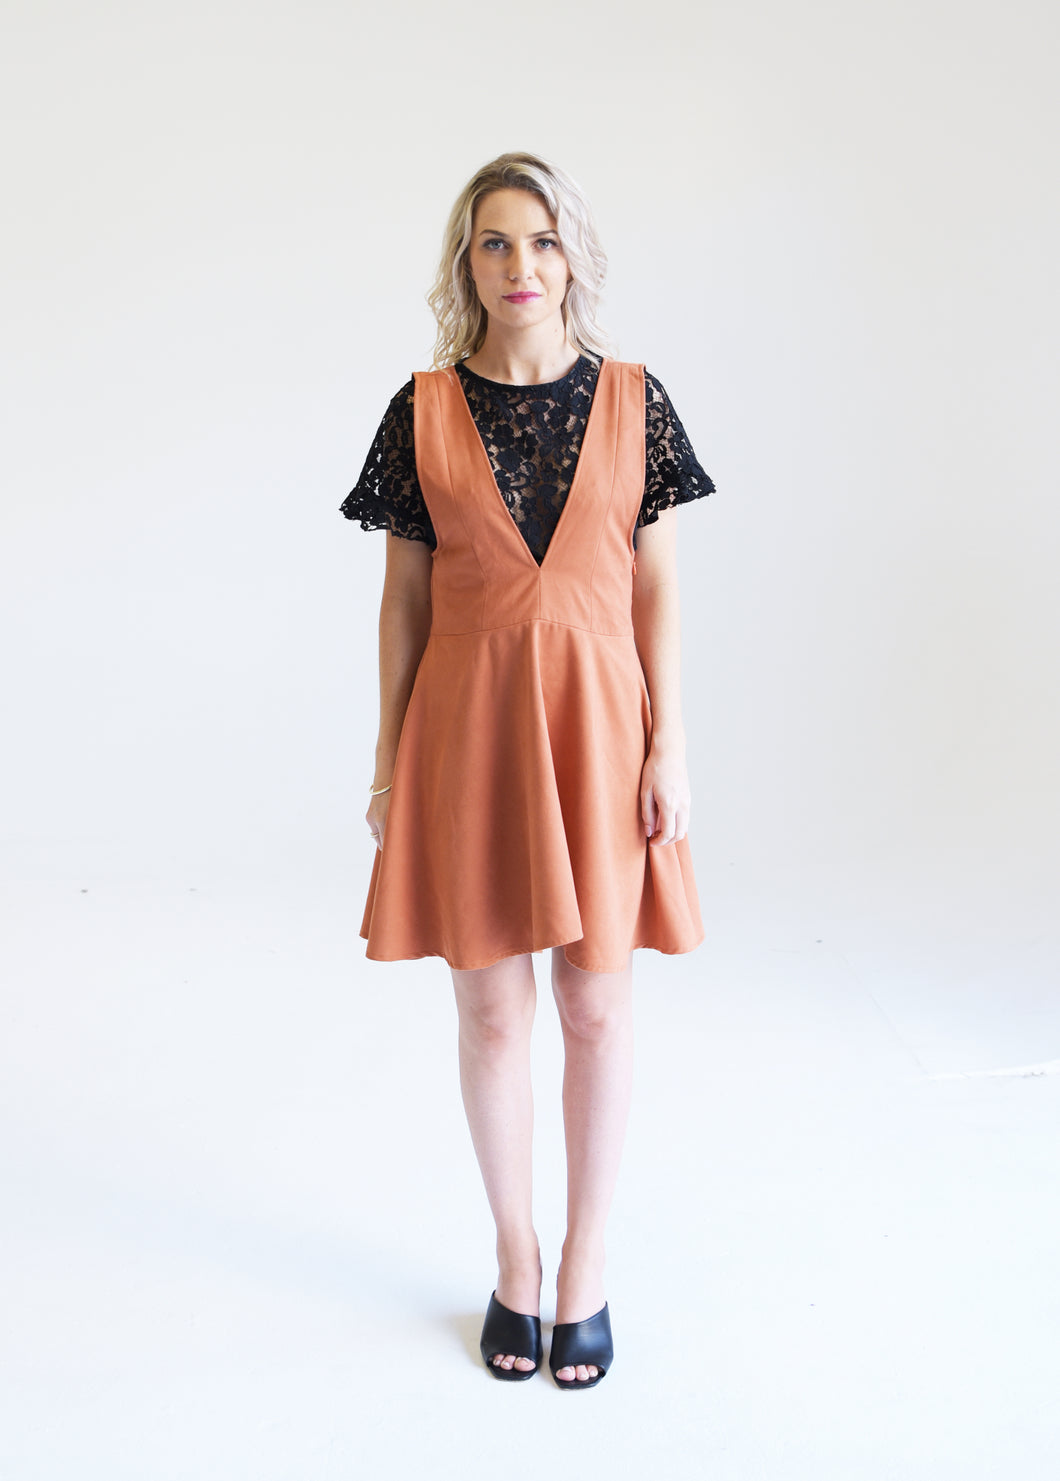 Faux Suede Sunset Orange Dress